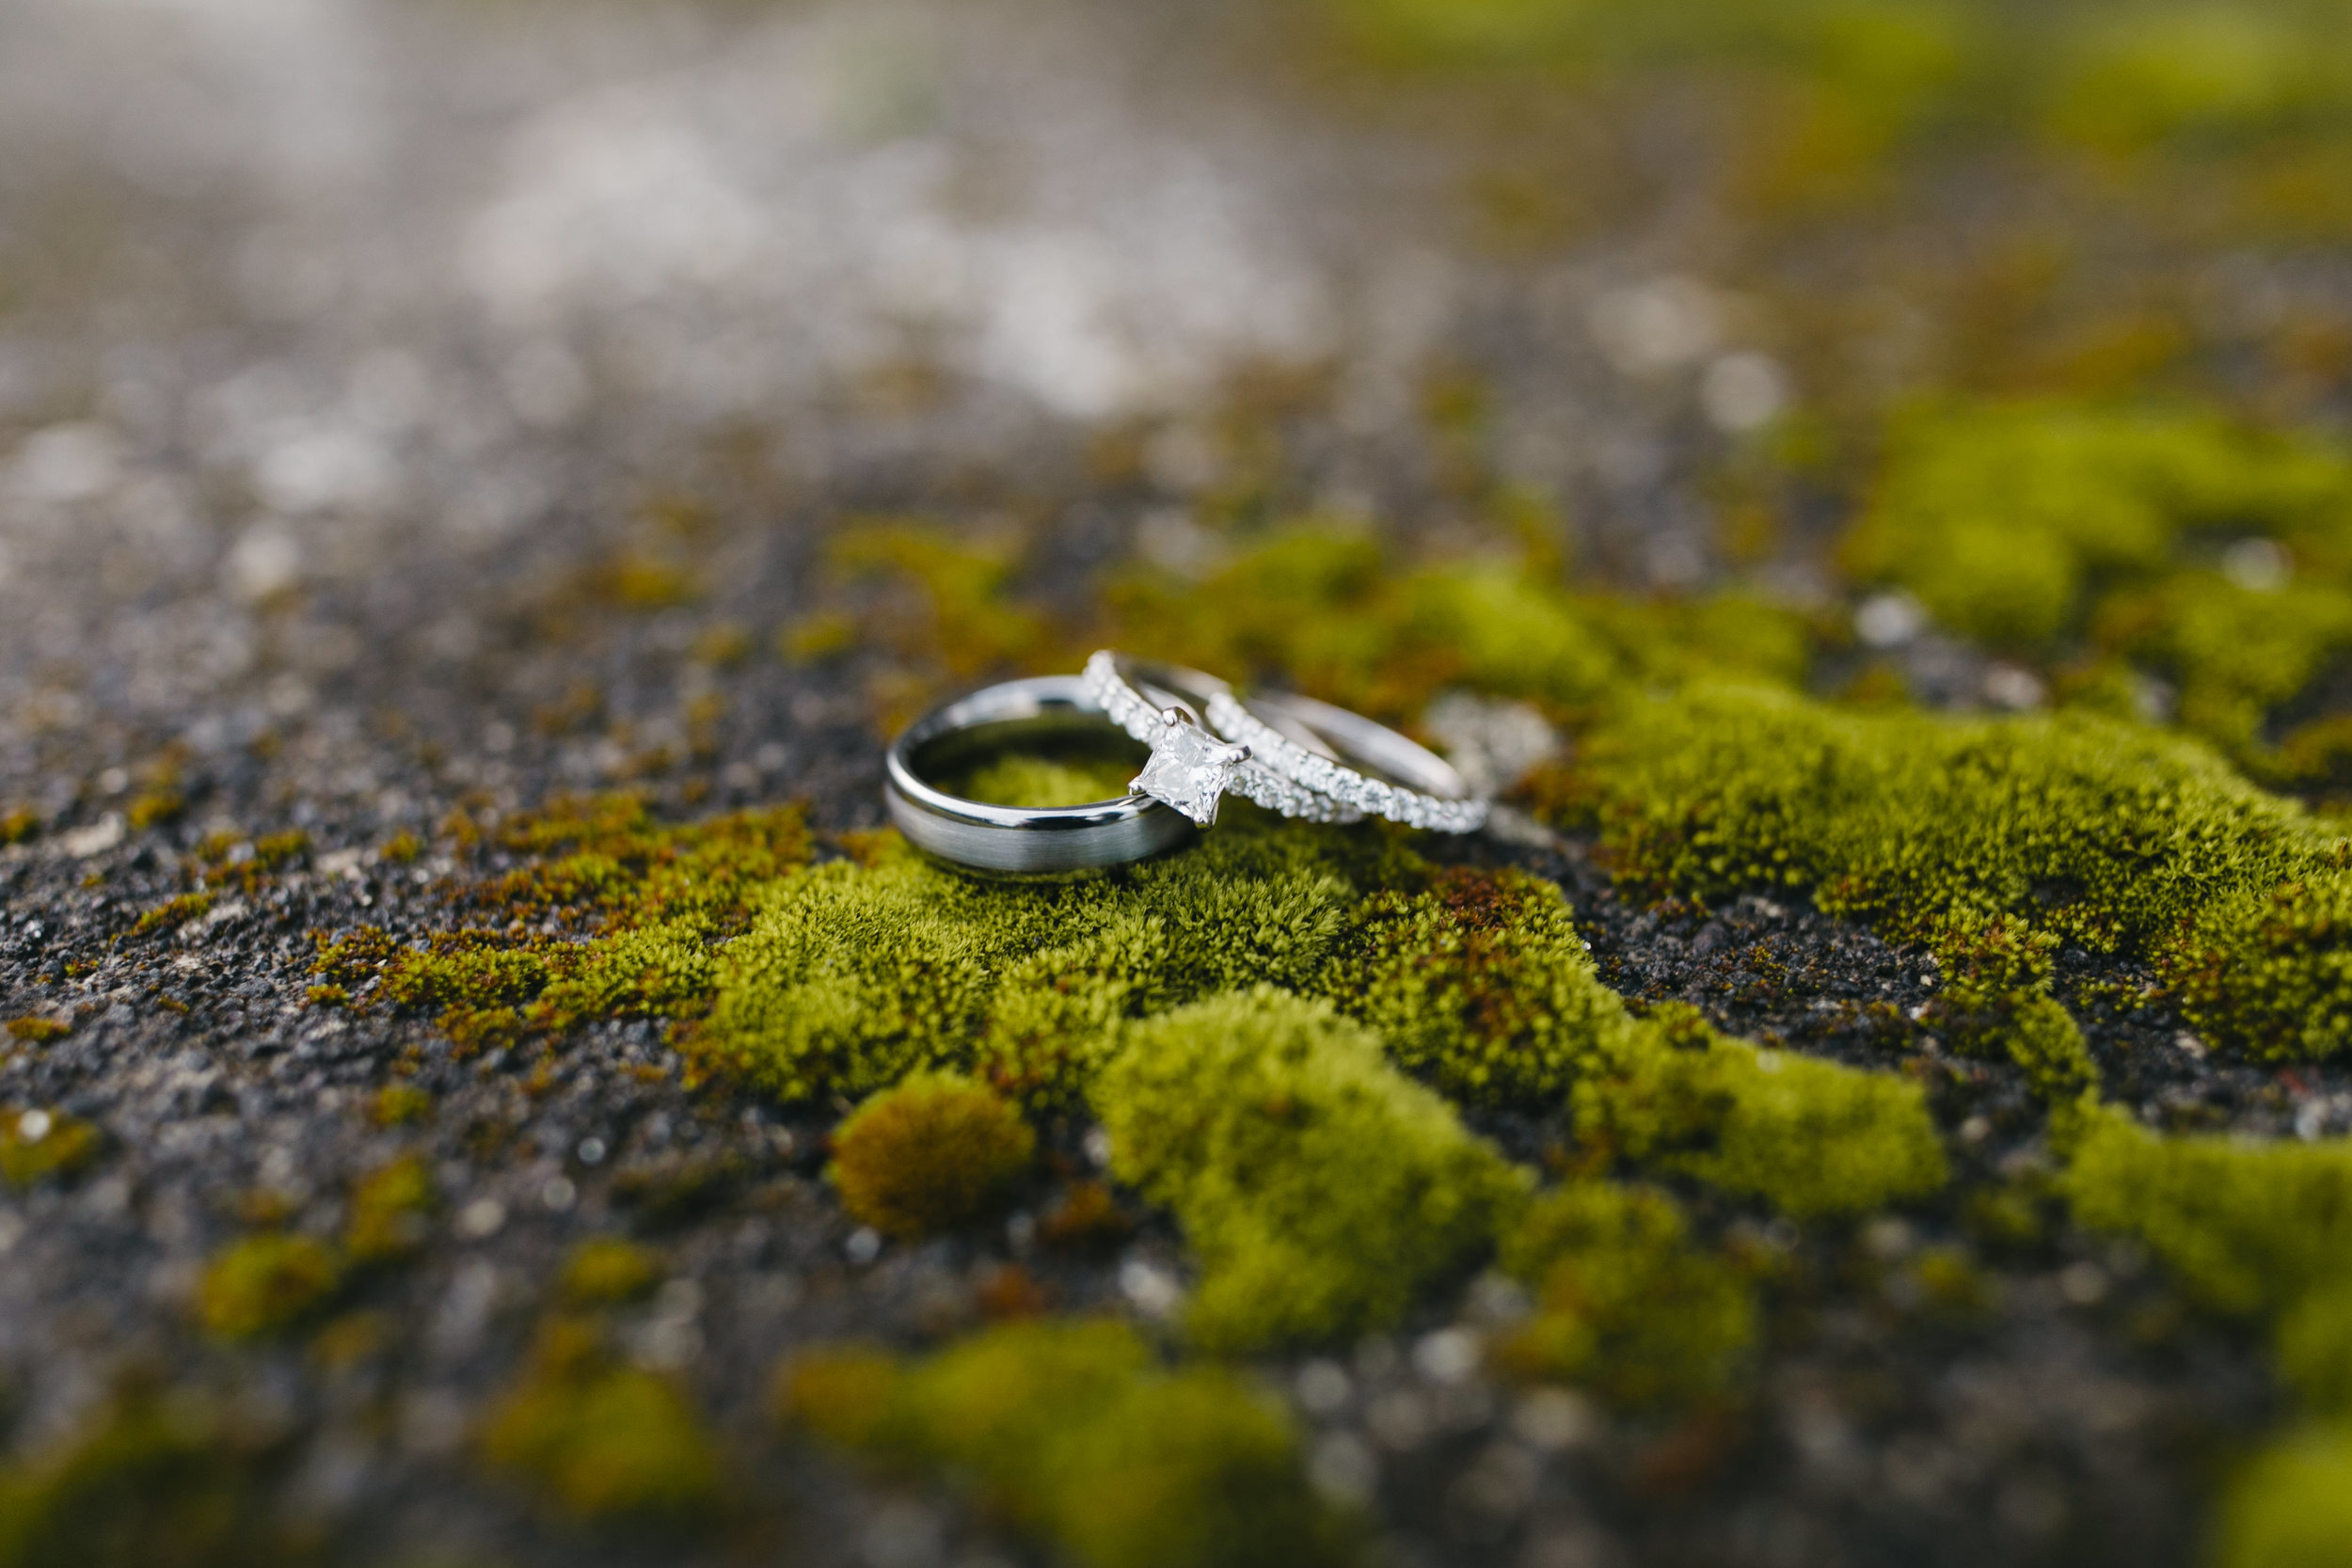 Iceland Elopement photographers Colby and Jess set up a couple's wedding rings on a beautiful bed of moss, colbyandjess.com